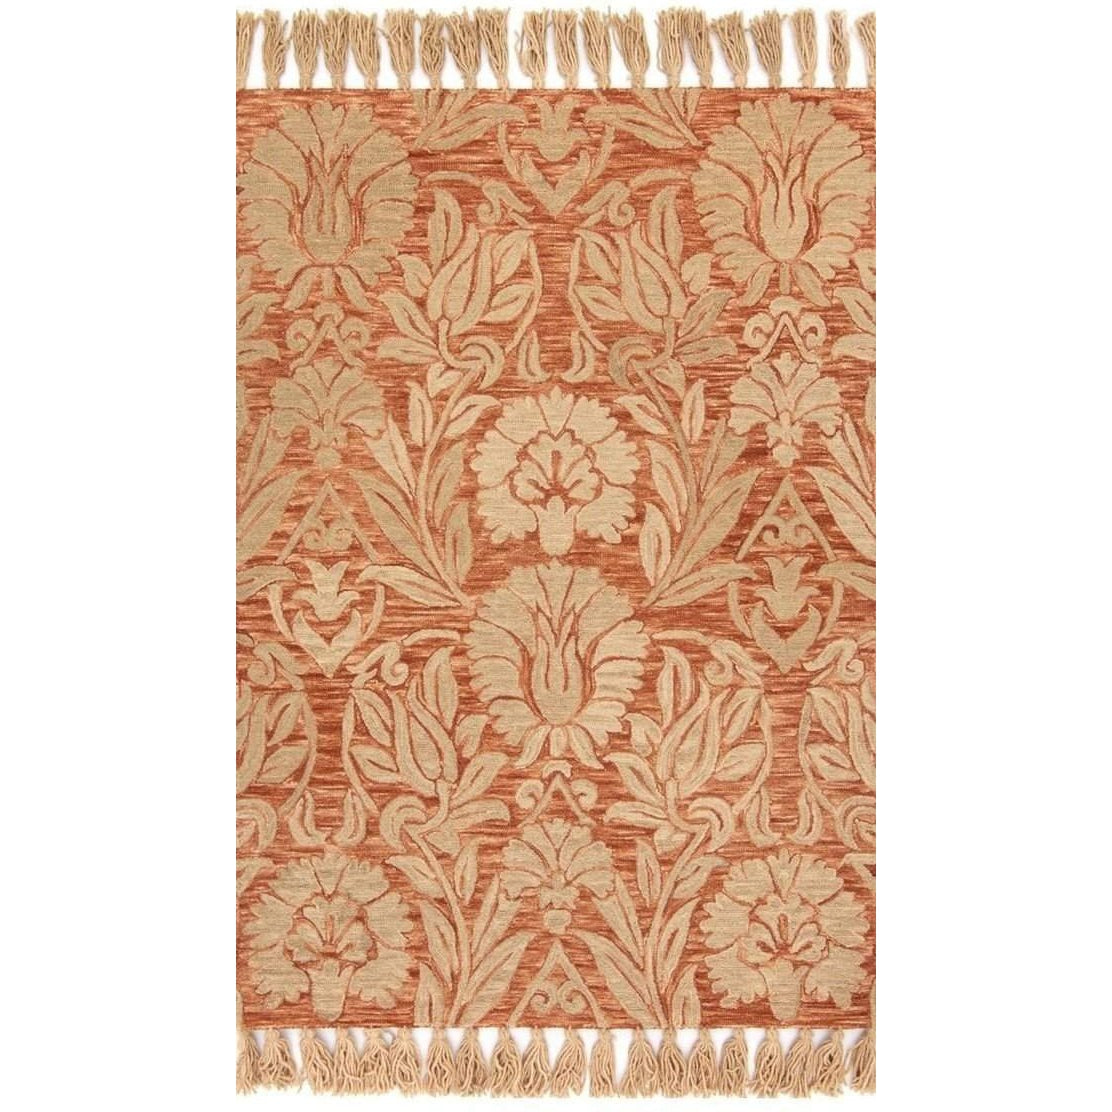 Joanna Gaines Jozie Day - JG-01 PERSIMMON - Blue Hand Home